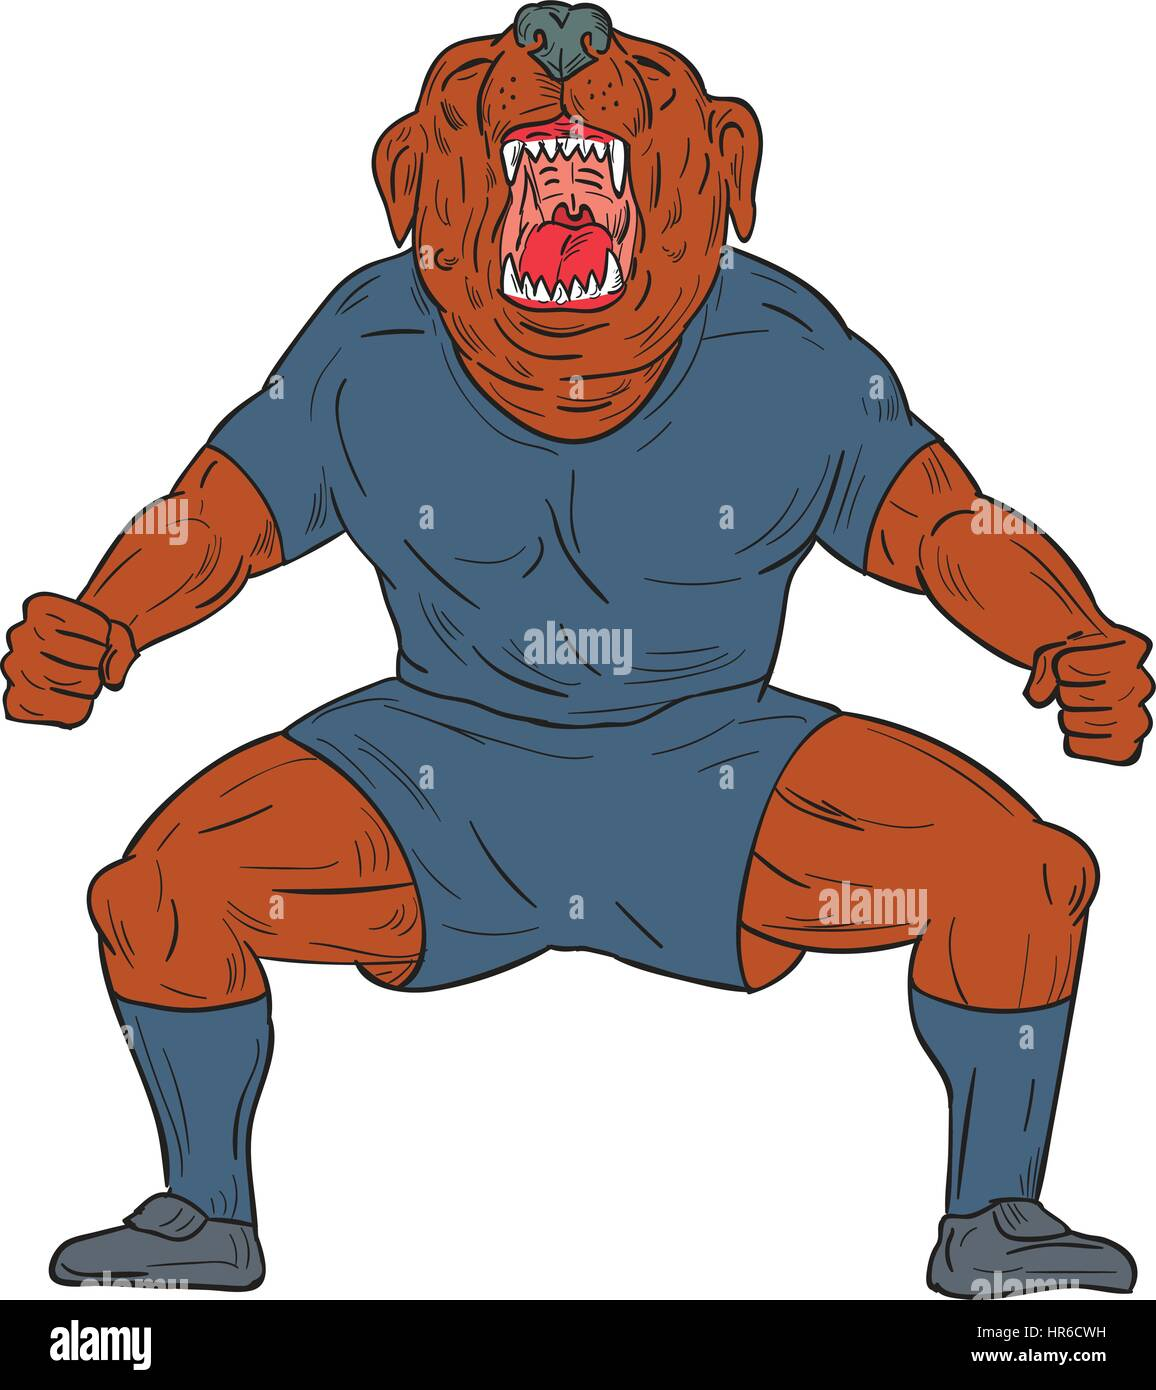 Illustration of a bulldog footballer with knees bent and mouth wide open celebrating haka victory goal viewed from - Stock Vector